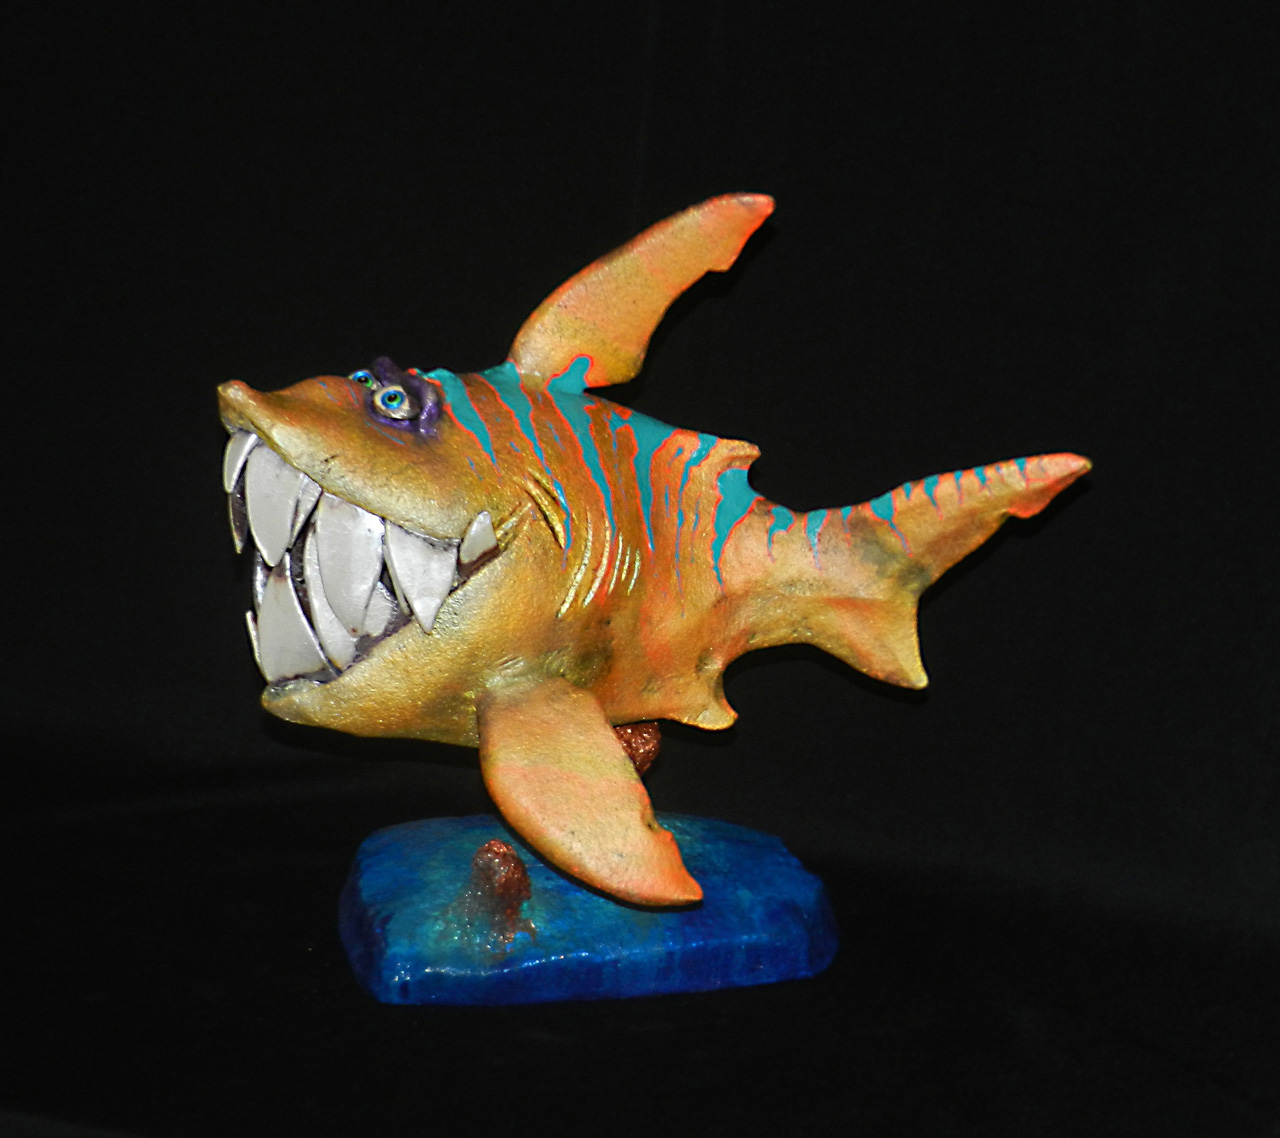 Paia Piranha by Steven Lee Smeltzer cartoonish whimsical clay sculpture of a piranha